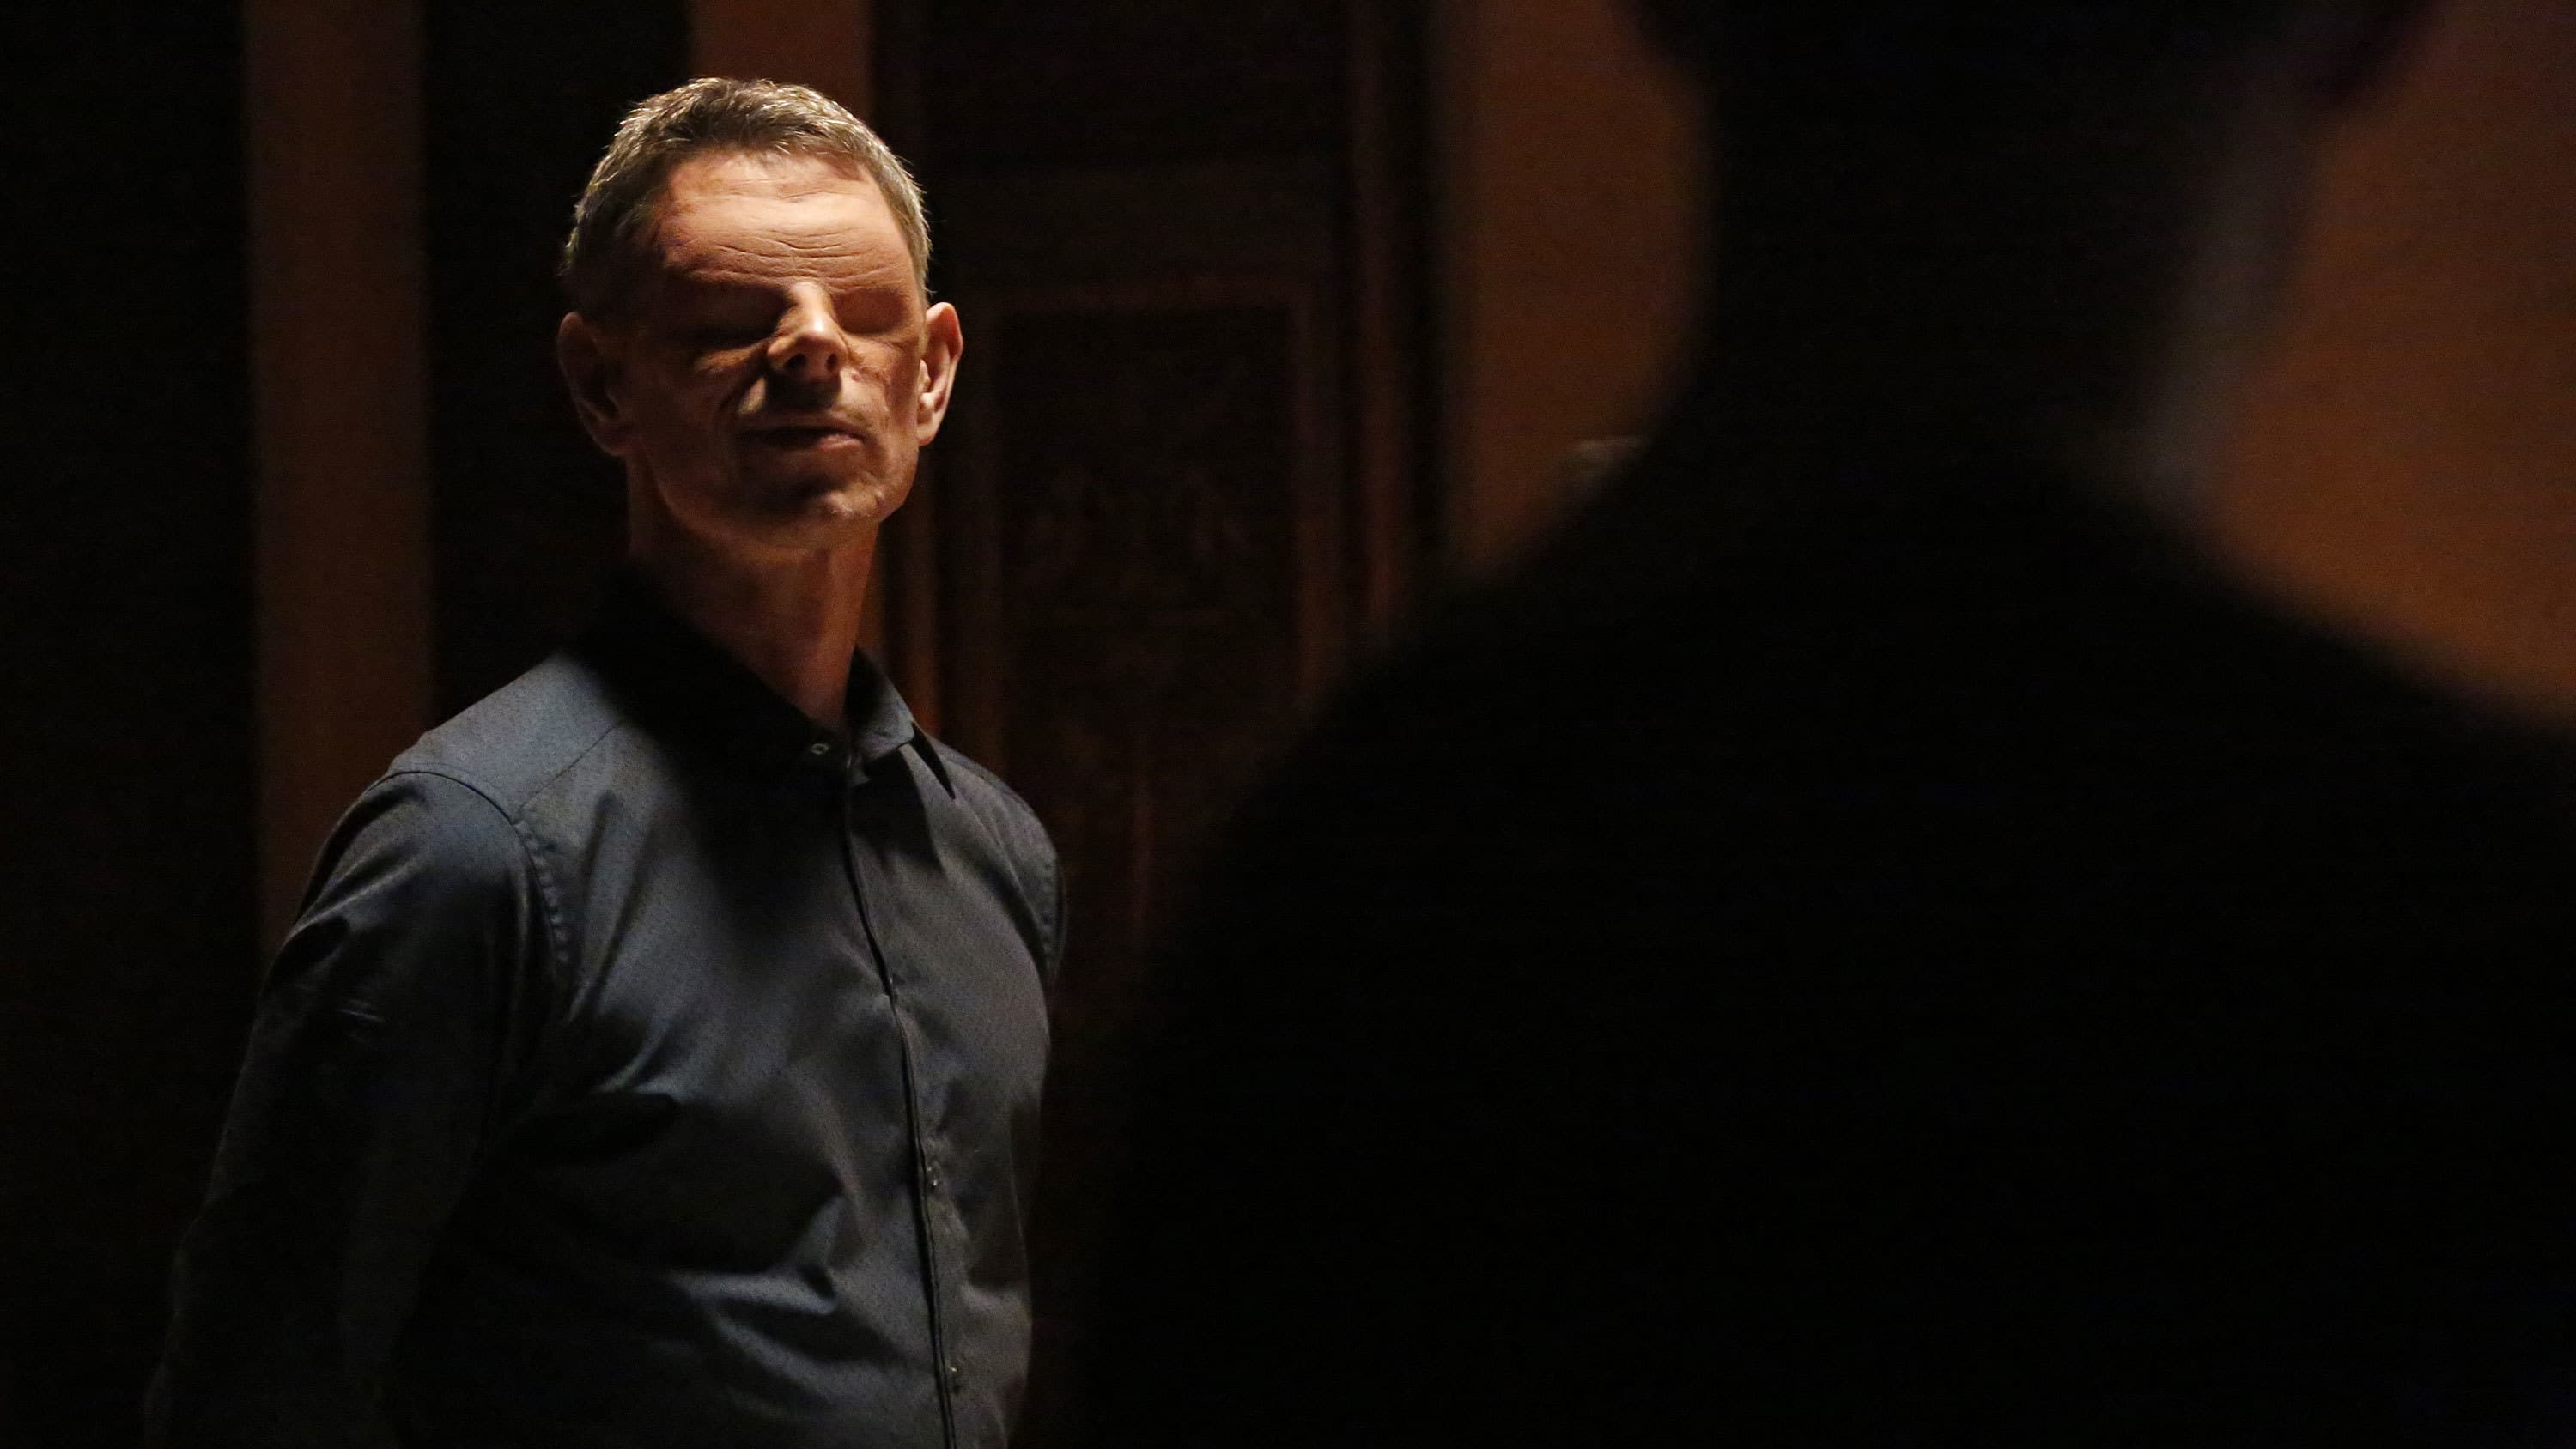 Marvel's Agents of S.H.I.E.L.D. - Season 2 Episode 16 : Afterlife